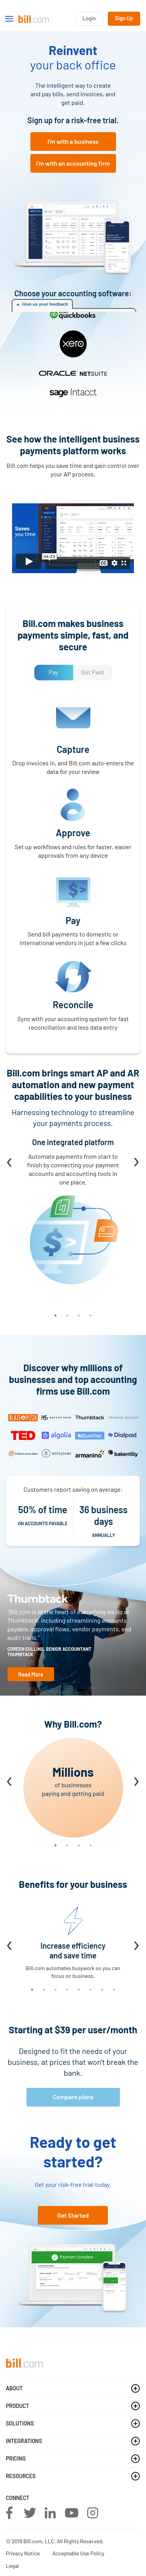 Example of Design for Finance, Accounting & Auditing, Mobile Landing Page by bill.com | Mobile Landing Page Design